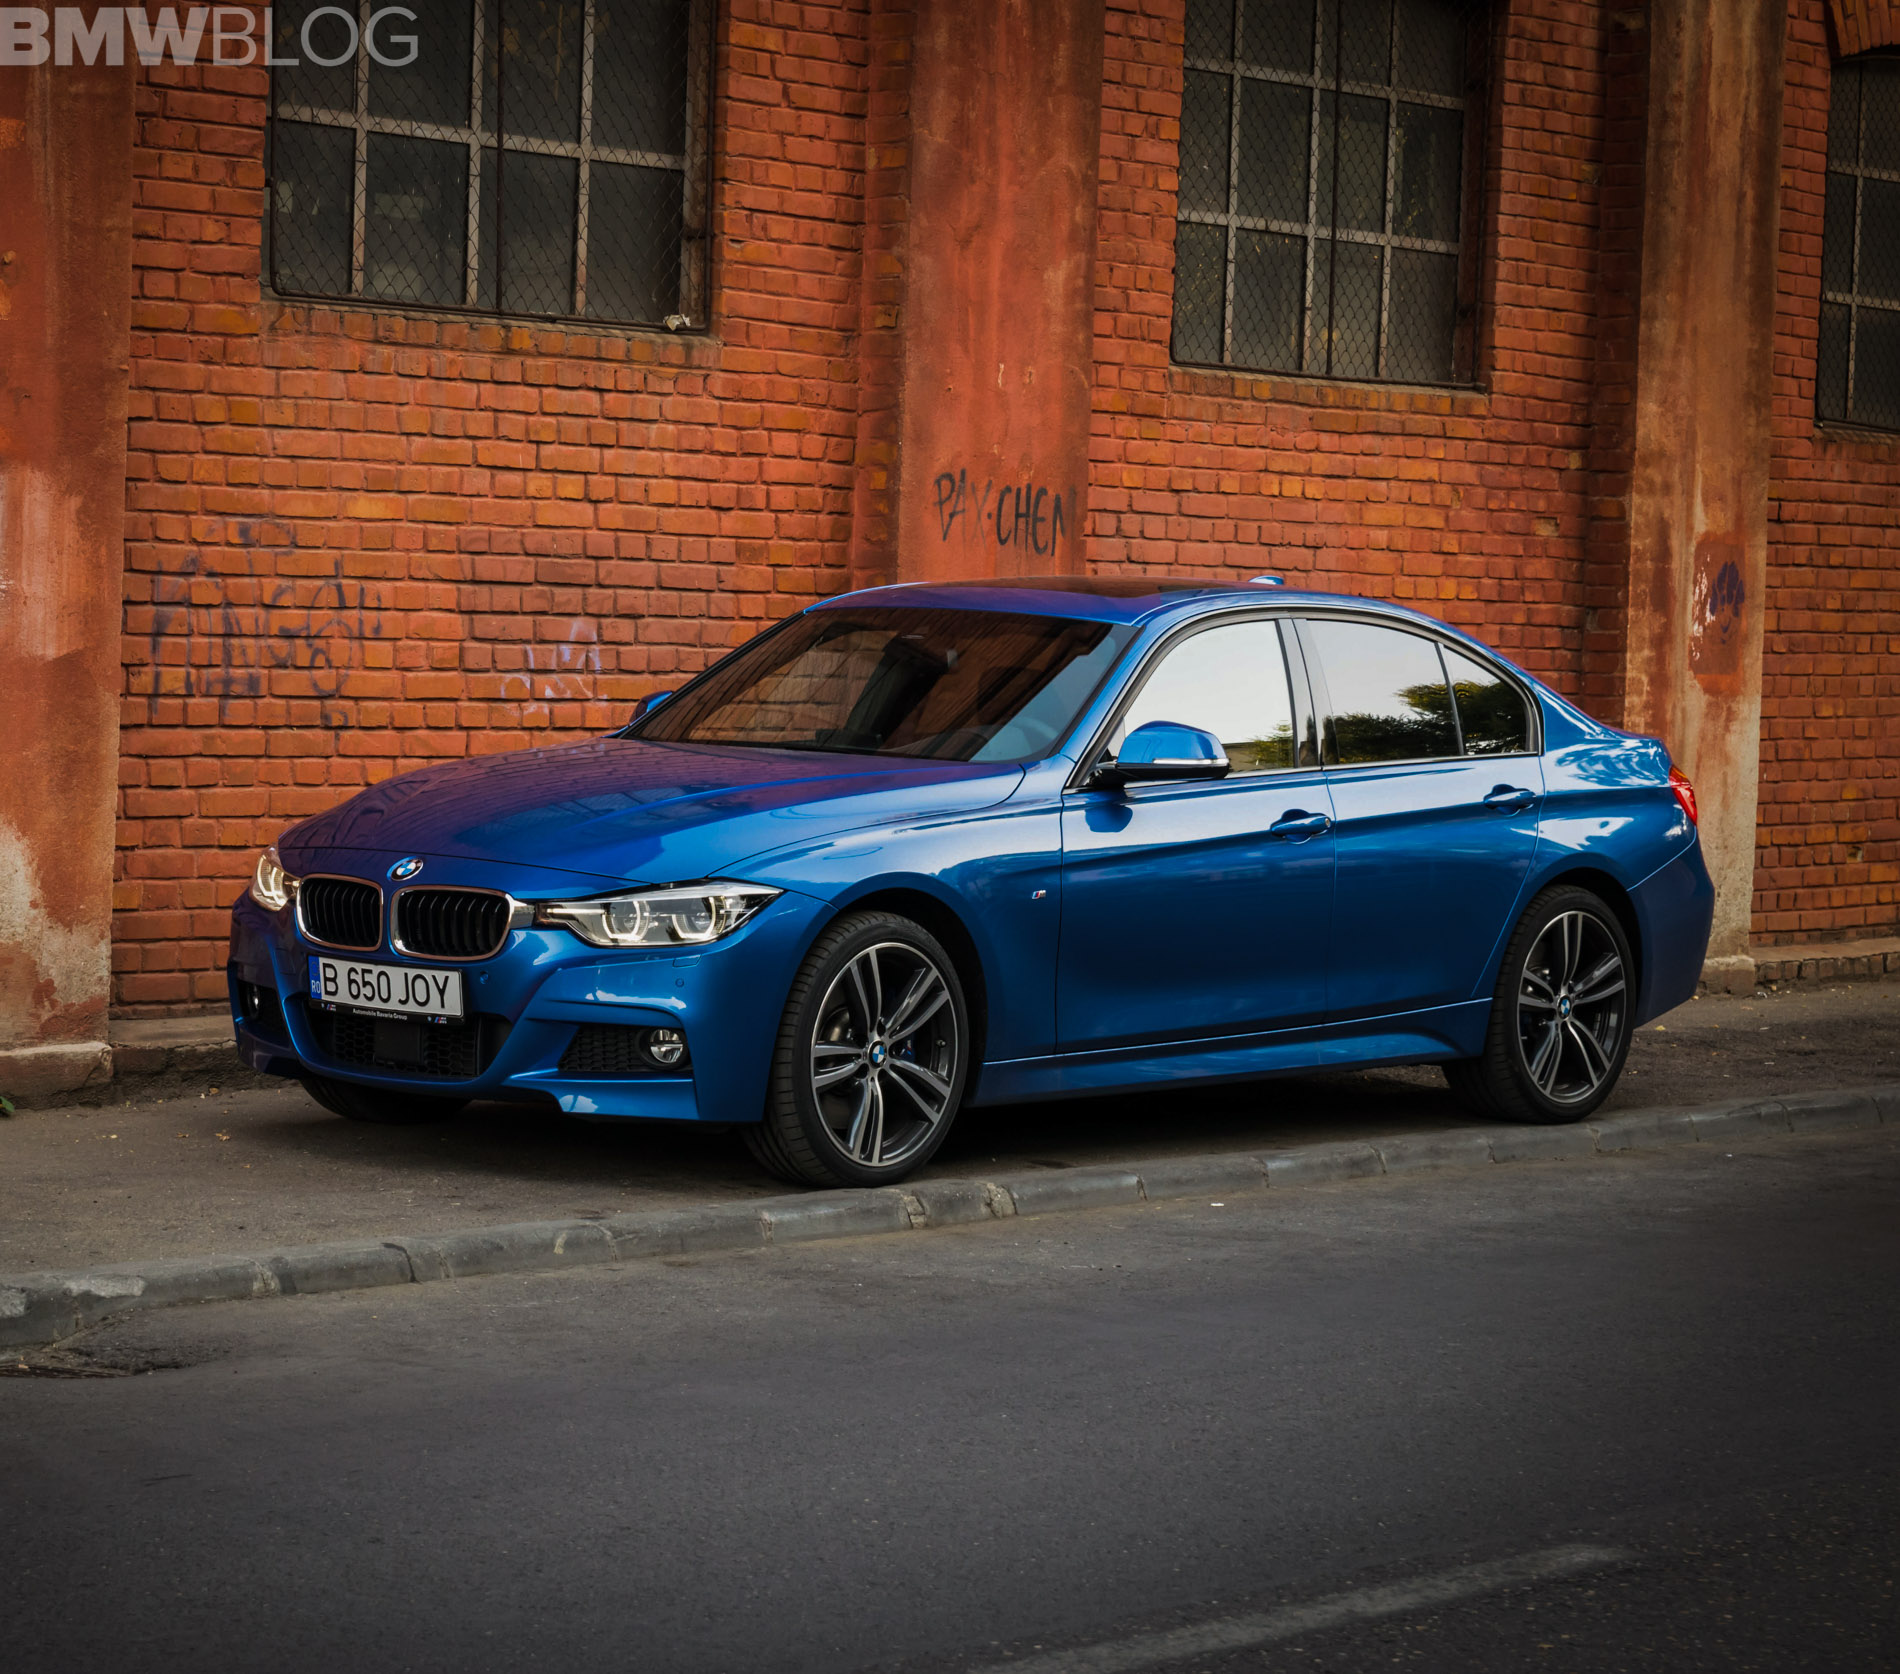 Bmw 3 Series G20 >> BMWBLOG Review: 2017 BMW 340i – The Perfect Sleeper